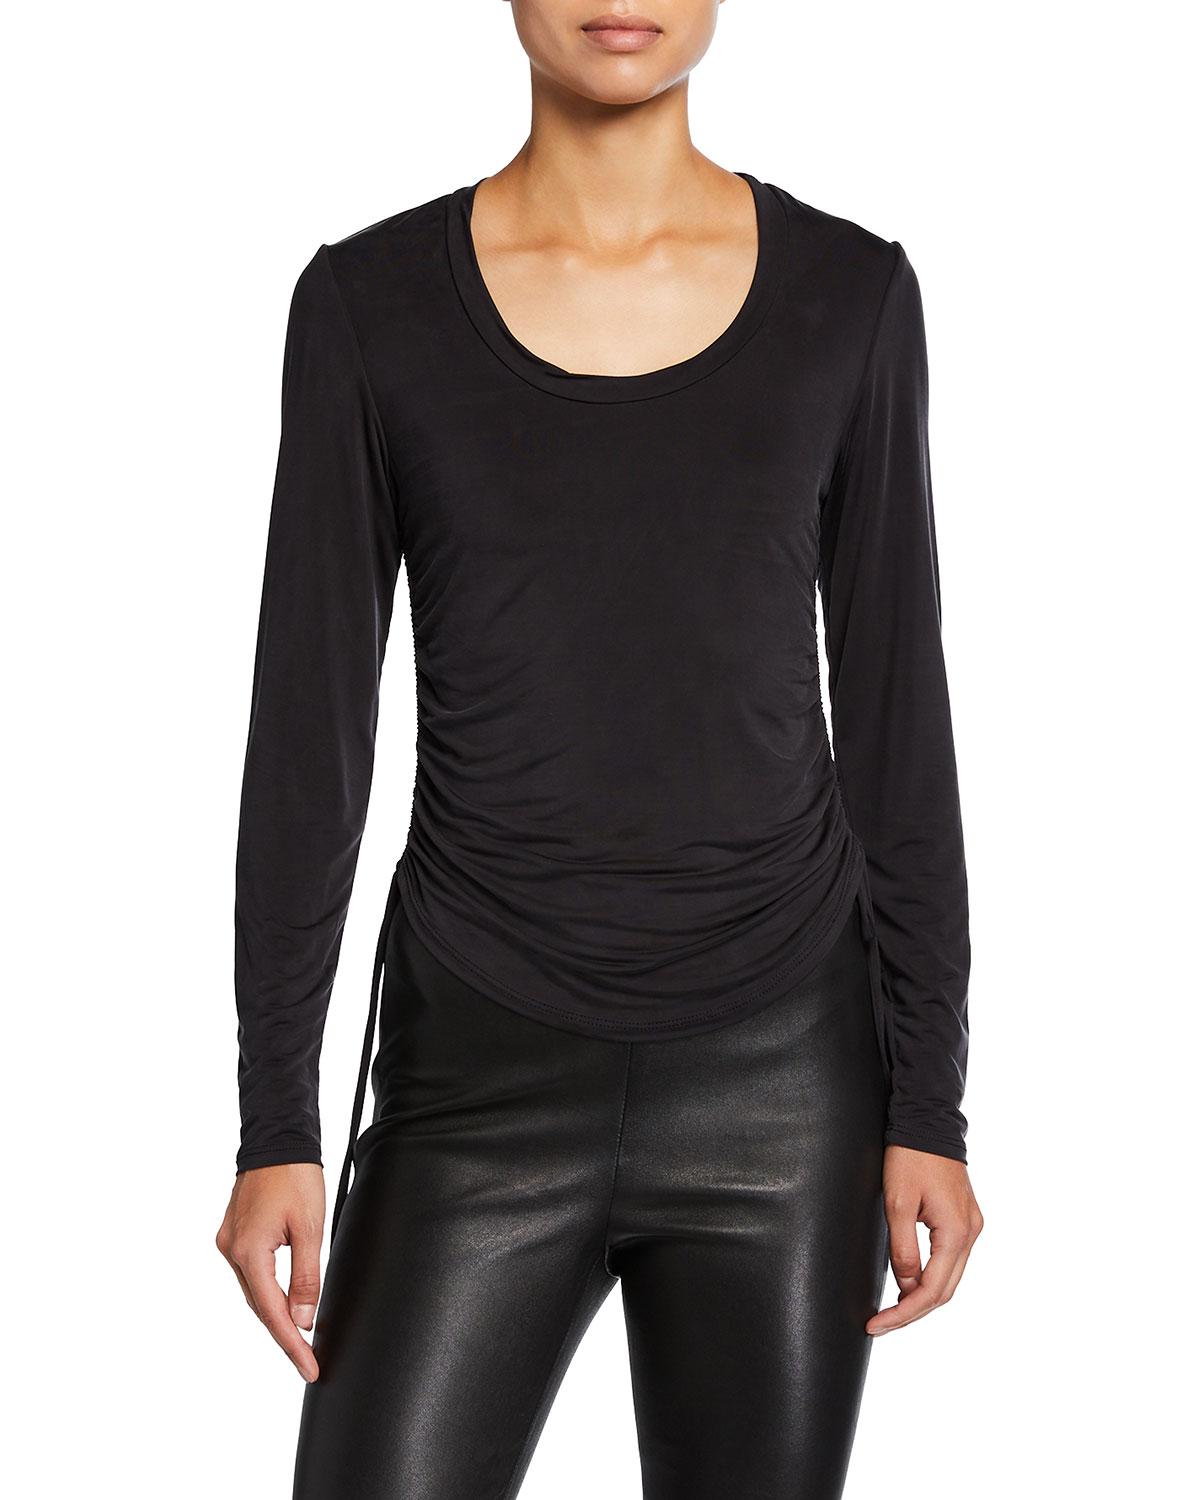 Jonathan Simkhai Collection Ruched Long-Sleeve Top